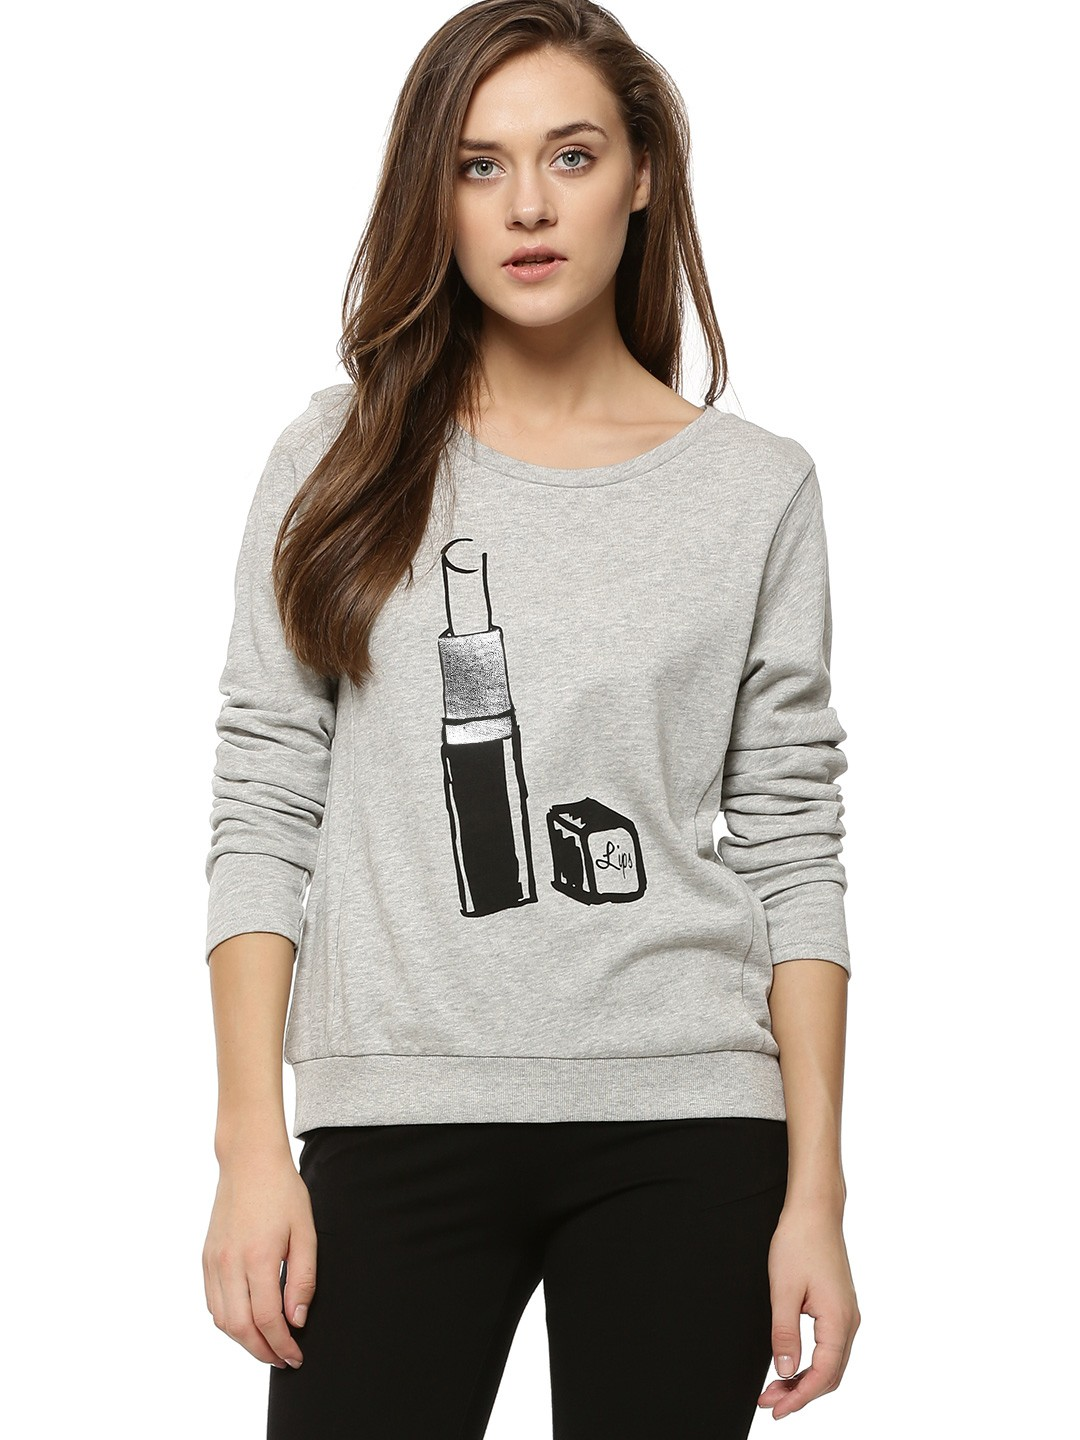 Buy ONLY Printed Sweatshirt For Women - Women's Grey Sweatshirts ...